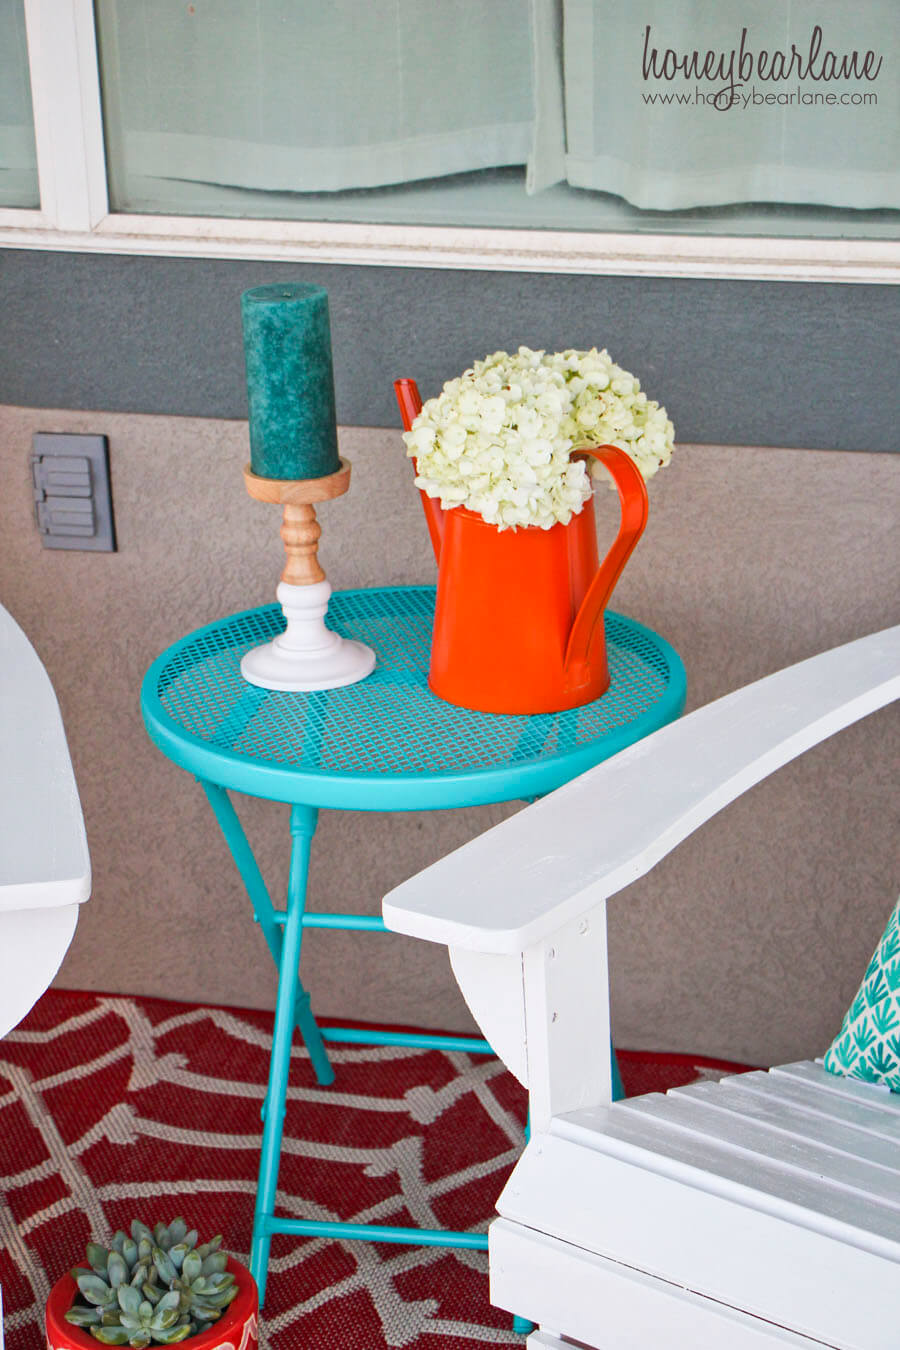 Colorful Seaside Table and Accessories